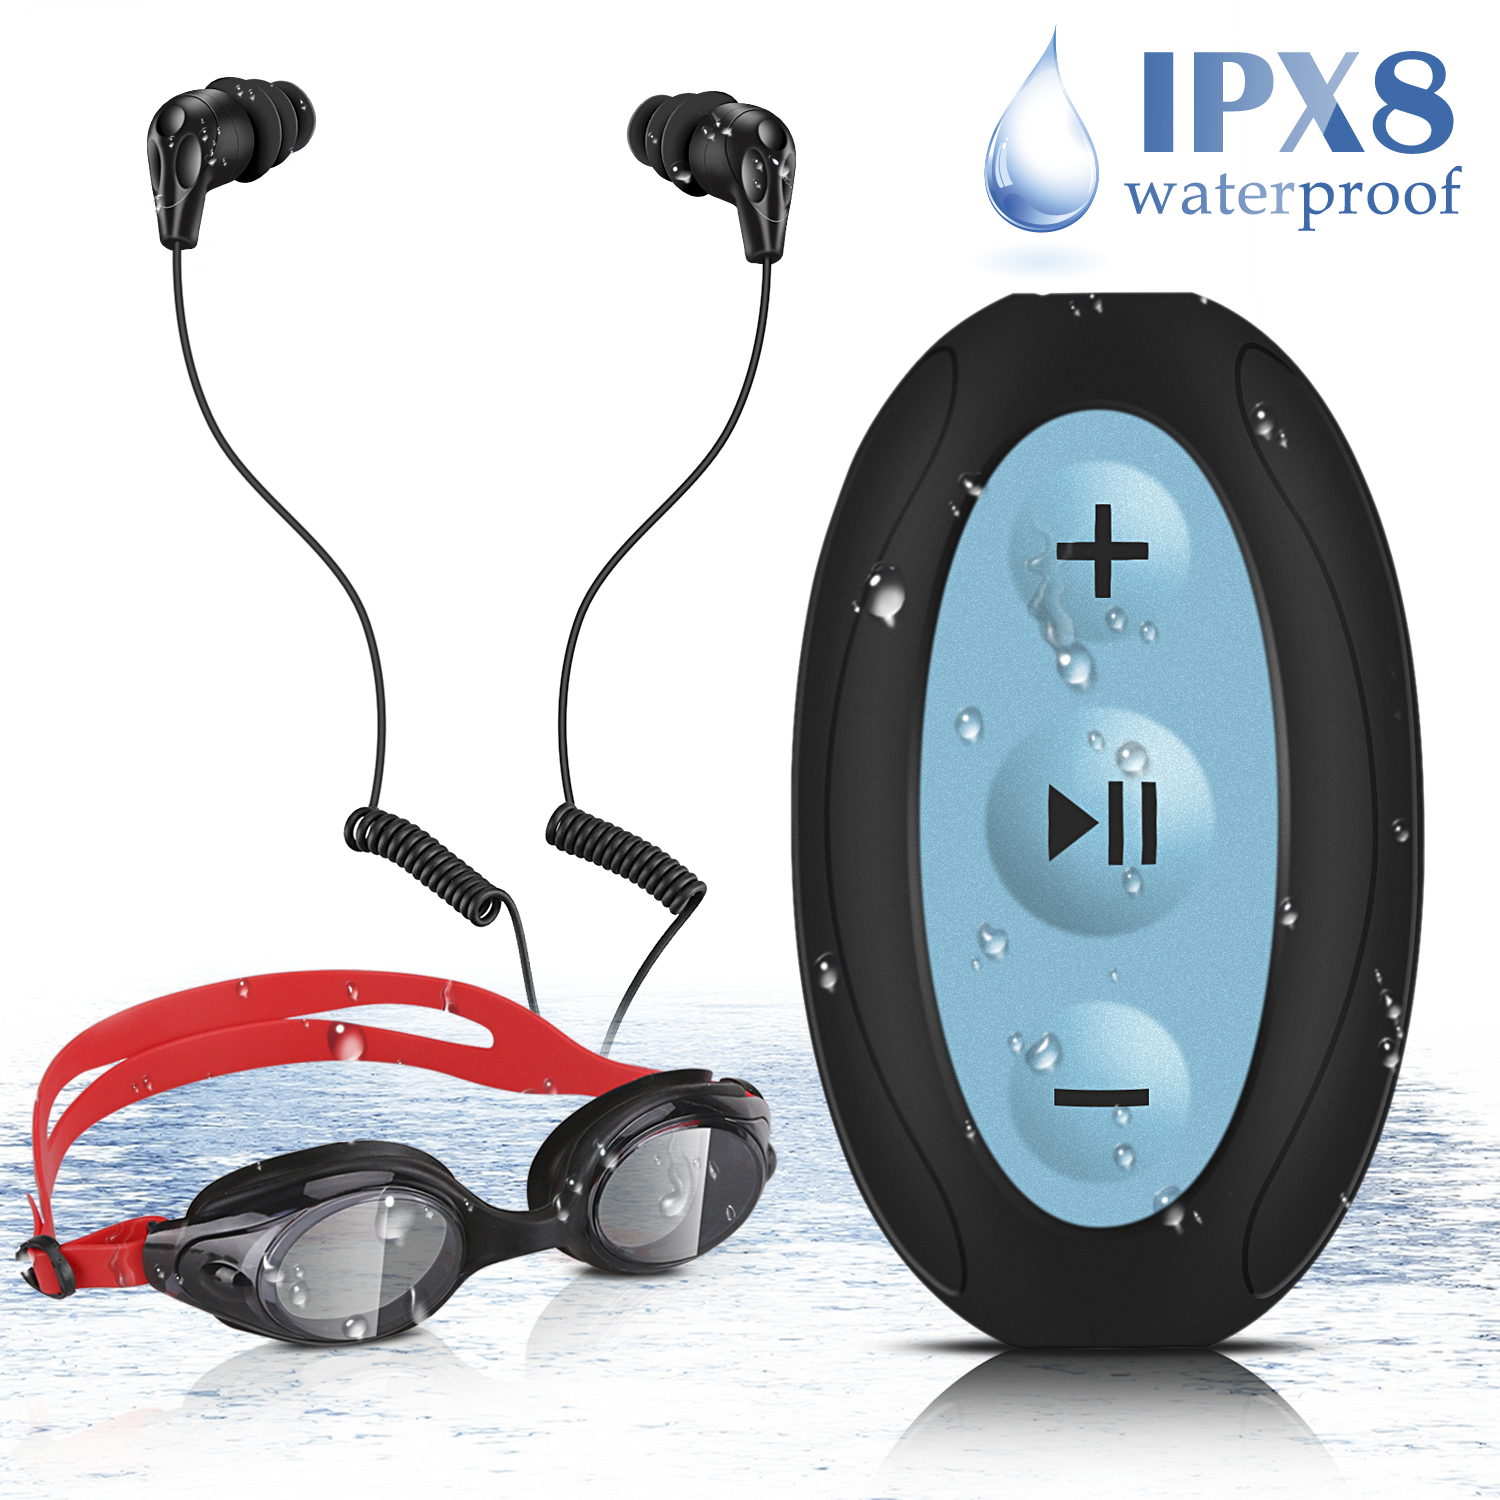 AGPTEK 8GB Waterproof MP3 Player with Shuffle, Underwater Headphones Goggles for Swimming, S66(Black)